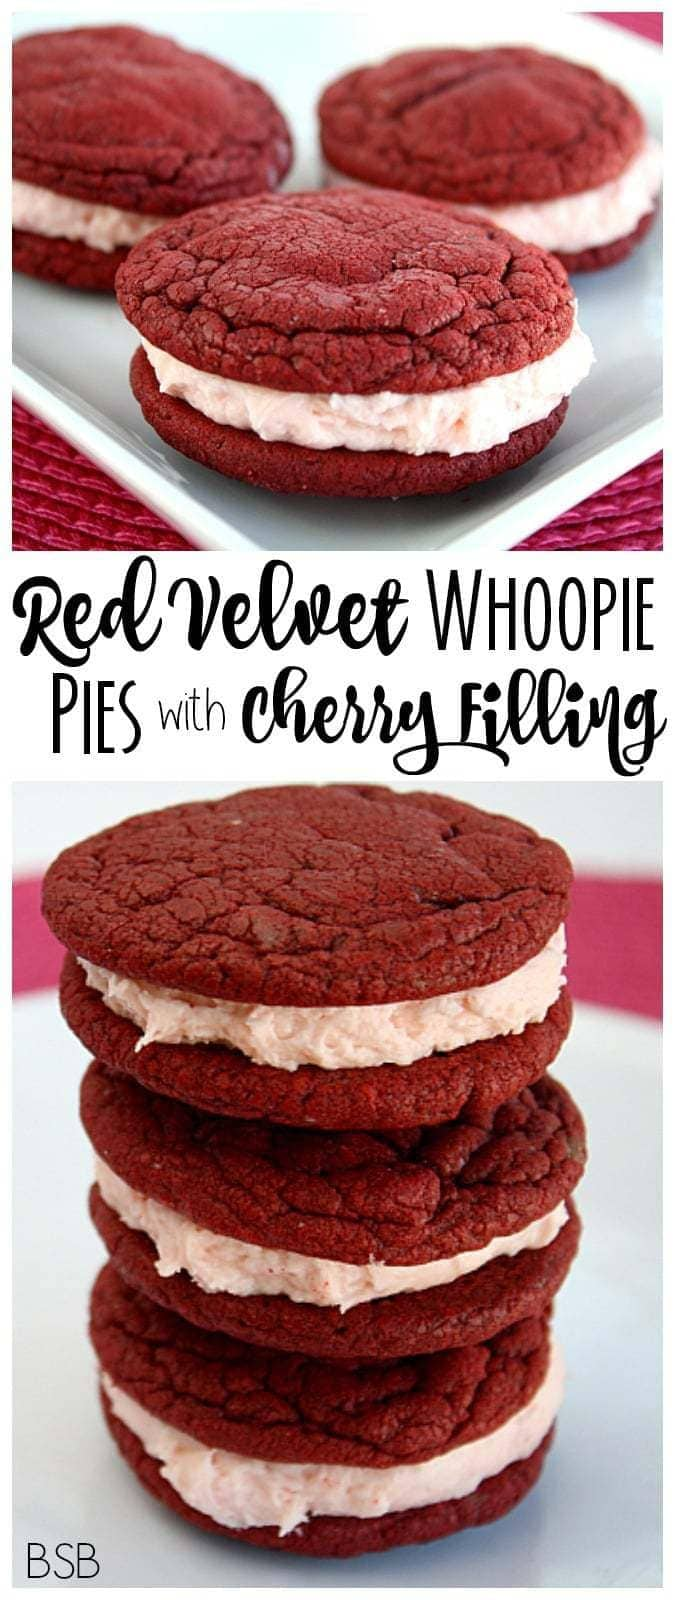 Red Velvet Whoopie Pies with Cherry Cream Filling - Butter With A Side of Bread